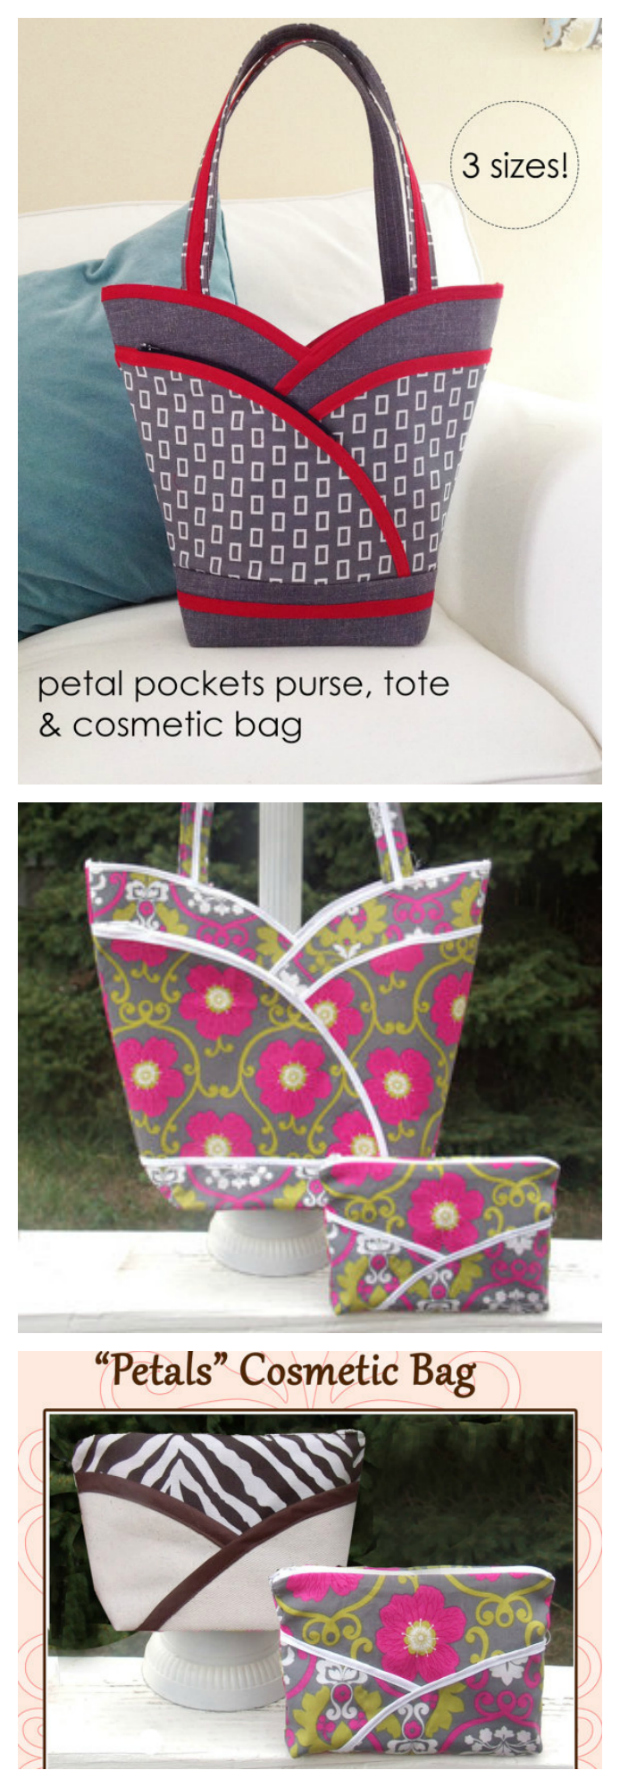 "Look at this beautiful-looking Tote Bag that comes in two sizes, is reversible and has a matching cosmetics bag as well. The Petal Purse Tote Bag has loads of storage space. It has four slip pockets, two zippered ""petal"" pockets on the exterior and a nice roomy interior."